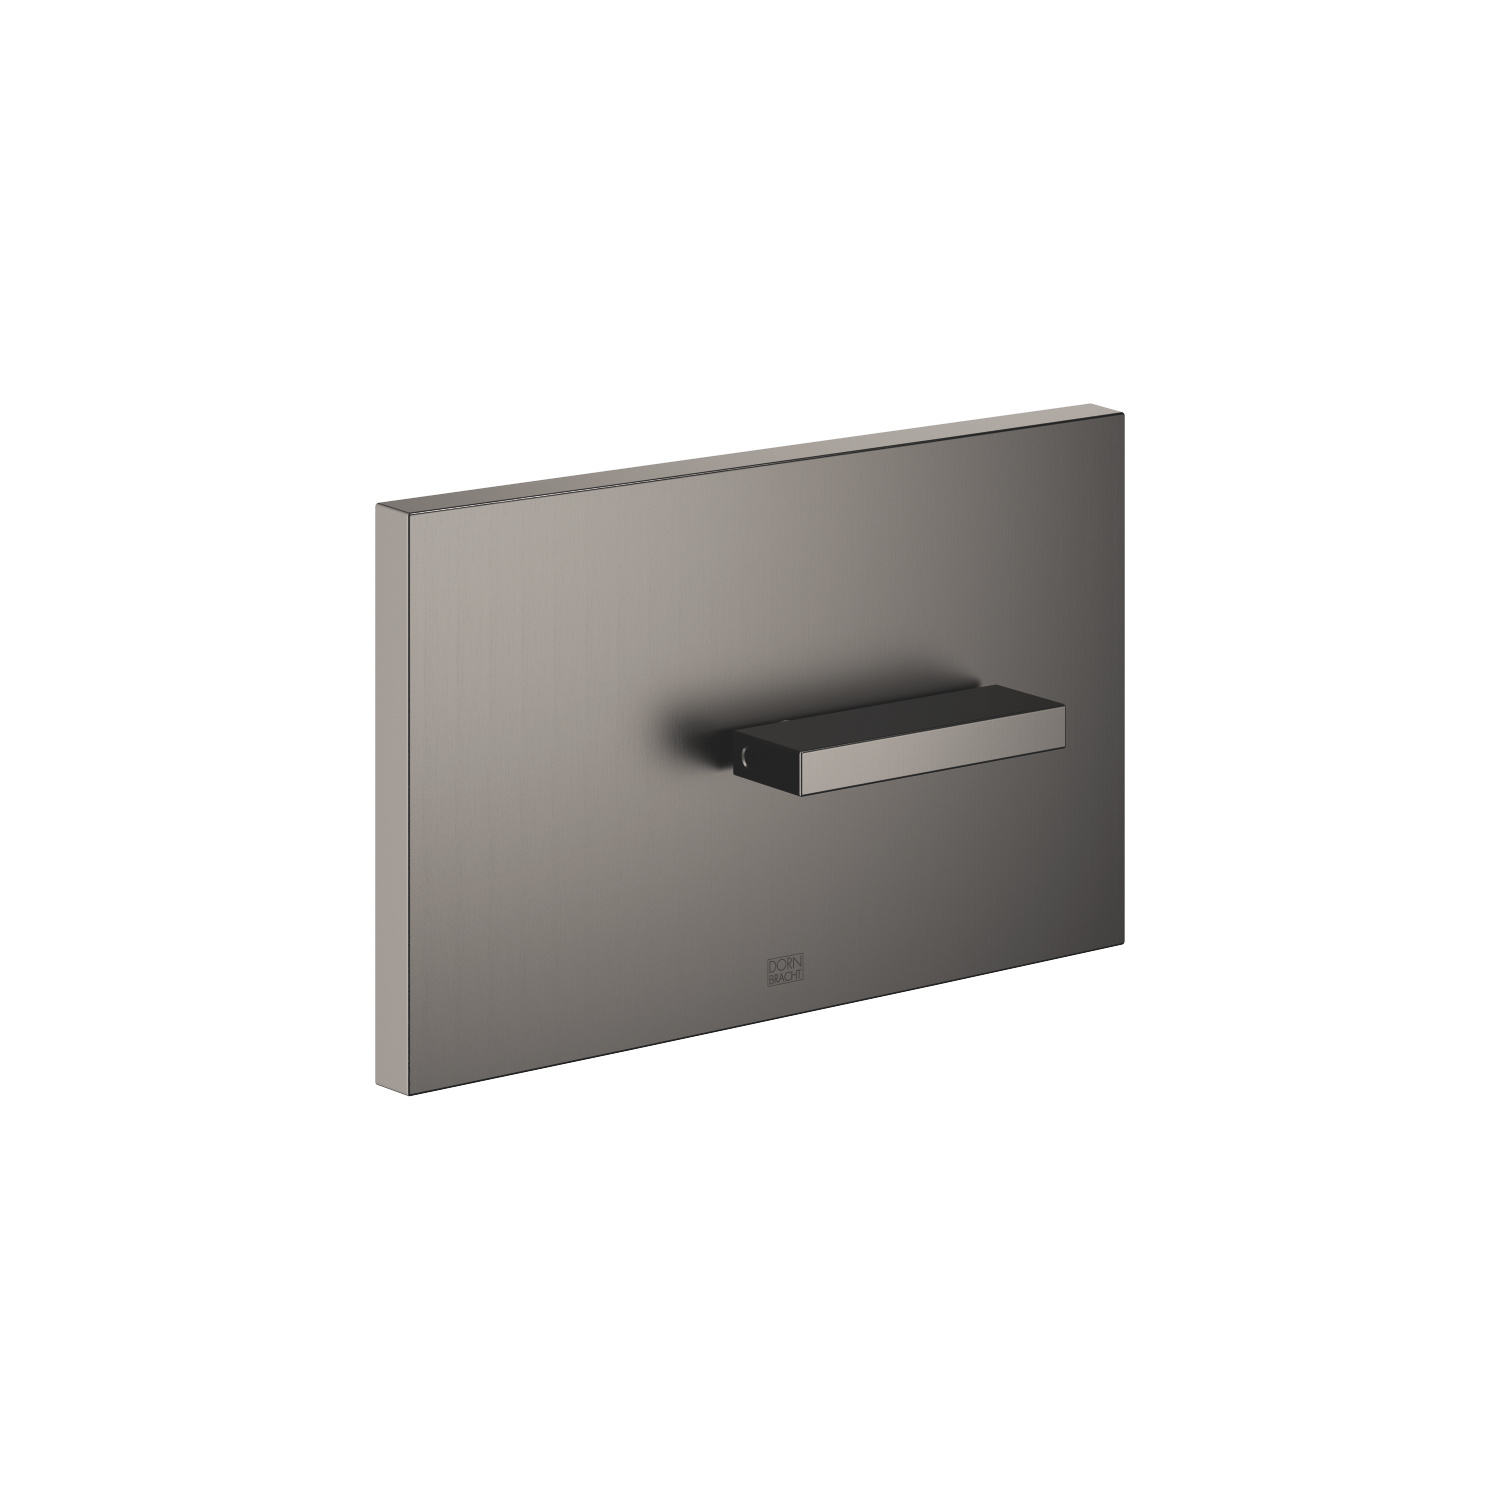 Cover plate for the concealed WC cistern made by TeCe - Dark Platinum matte